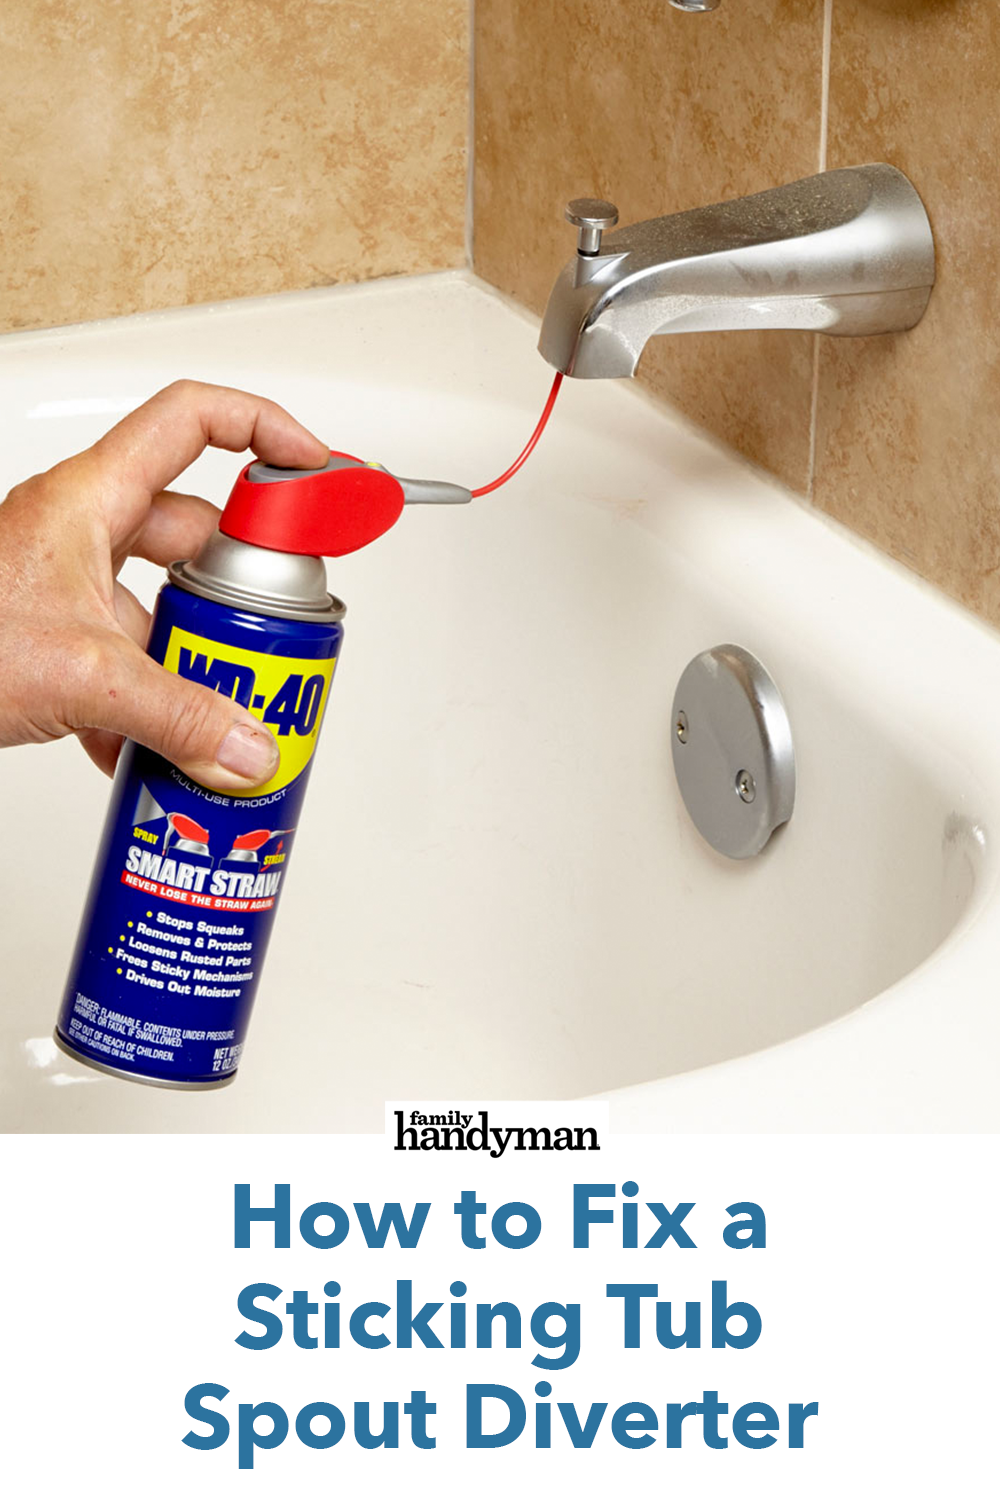 How To Fix A Sticking Tub Spout Diverter With Images Tub Spout